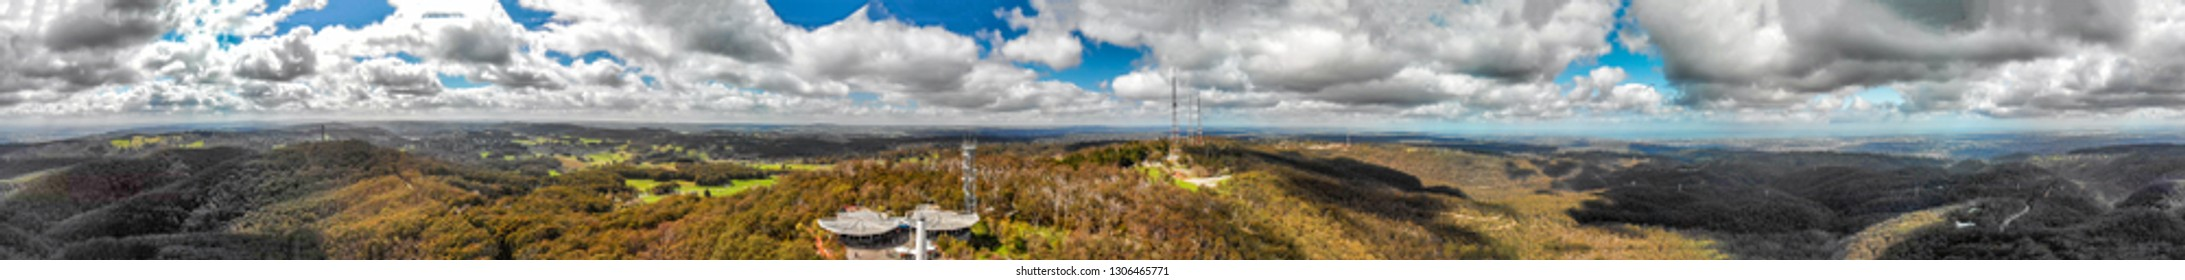 Mt Lofty panoramic aerial view, Adelaide, Australia.